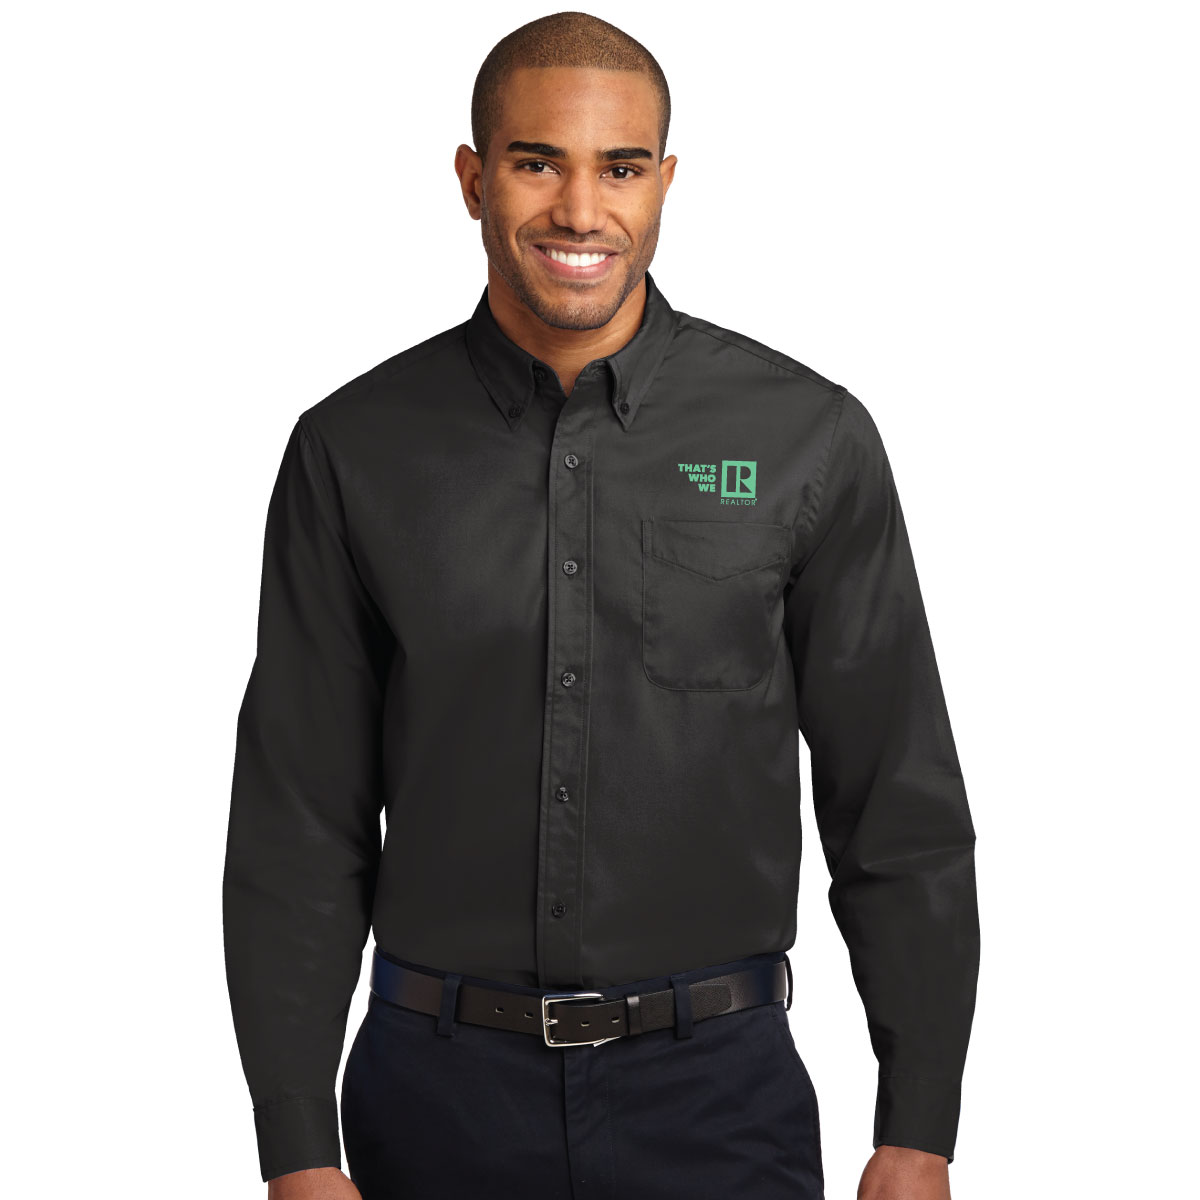 """Thats Who We R"" Mens Easy Care Long Sleeve Twill Shirt twwr,ThatsWhoWeR,Thats,TWWR,ThatWho,ThatsWho,Twwr,Thats,Whos,We,Ares,Twwr,Thats,Whos,Wes,Ares,Twills,ButtonDowns,Dress,Shirts,Collars"